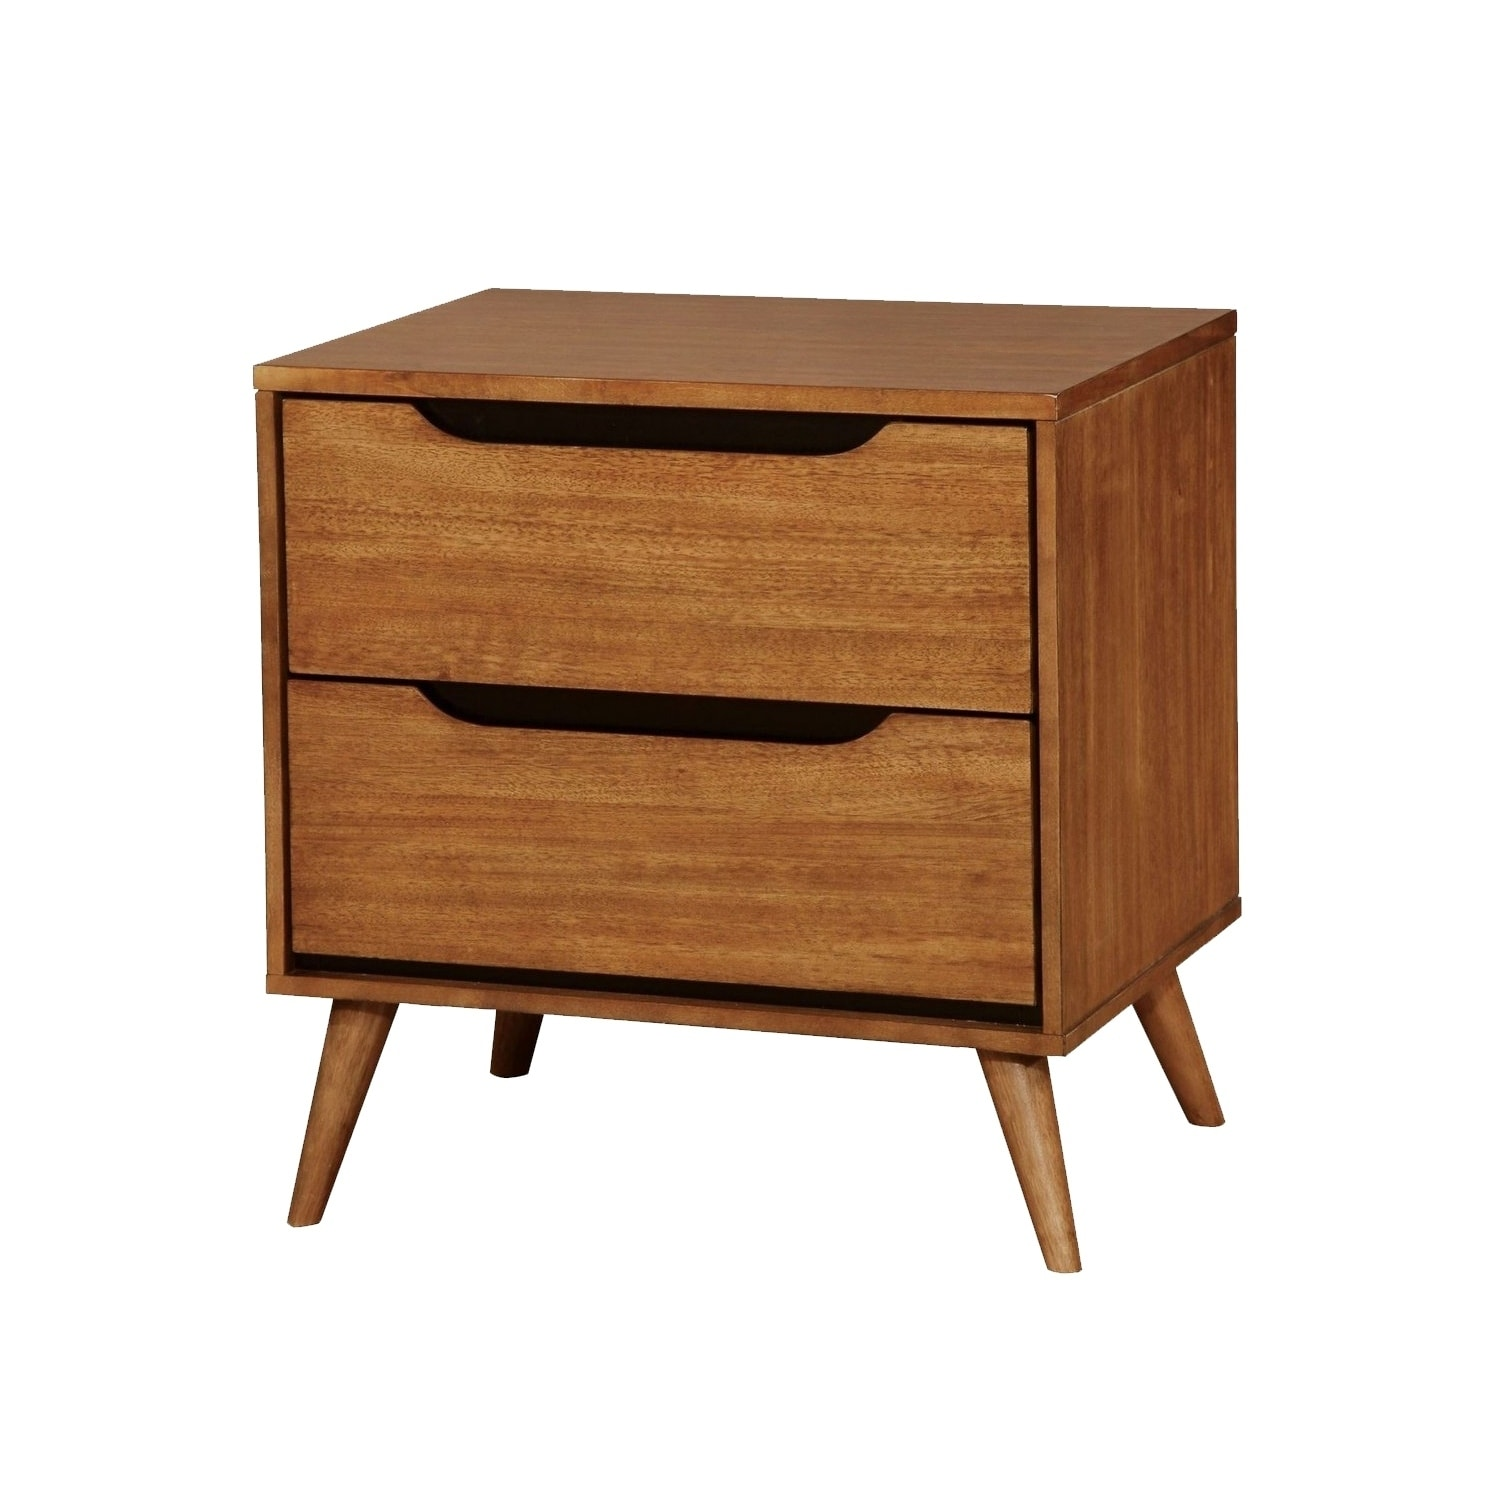 Lennart Mid Century Modern Nightstand Light Oak